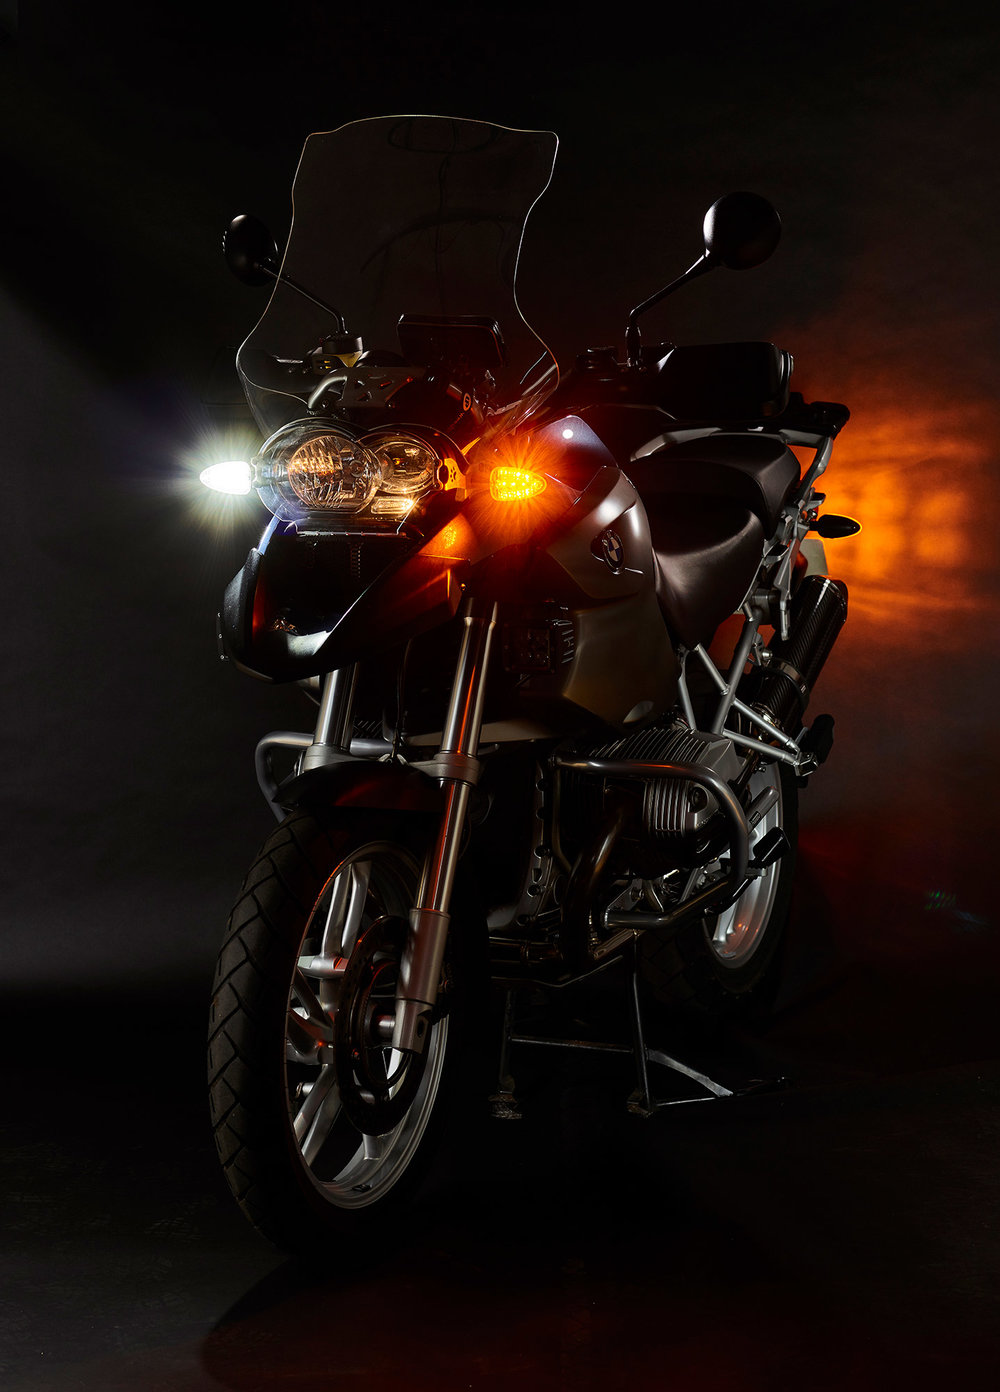 Ultrabrights 2-in-1 LED driving light/turn signal upgrades - For earlier BMW 'R, F, G, K and HP' series motorcycles from 2000 to 2014